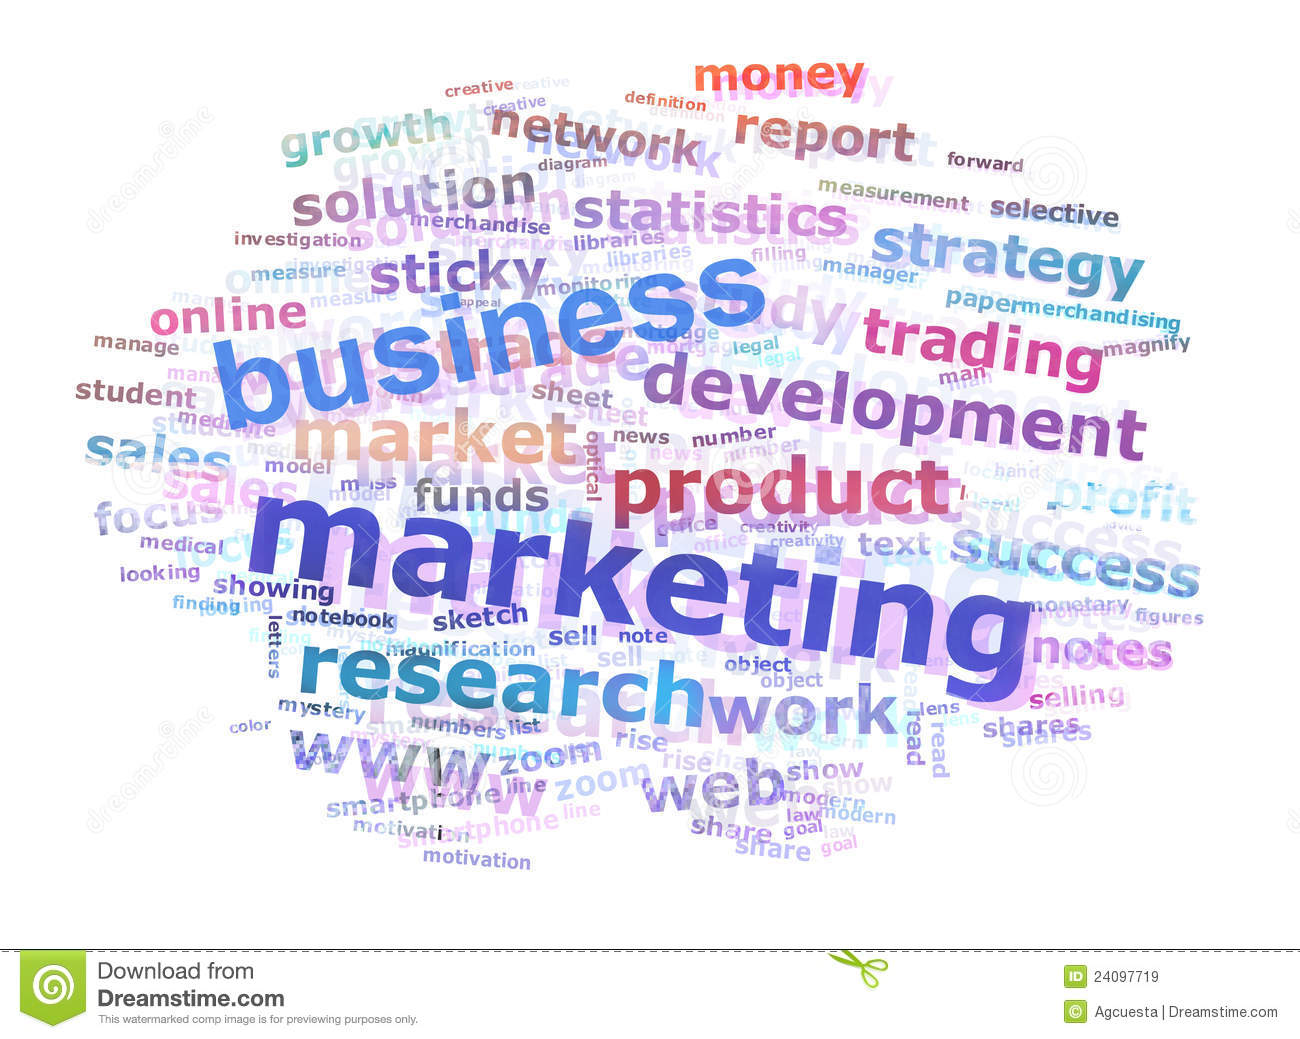 business-marketing-word-cloud-advertising-concept-24097719